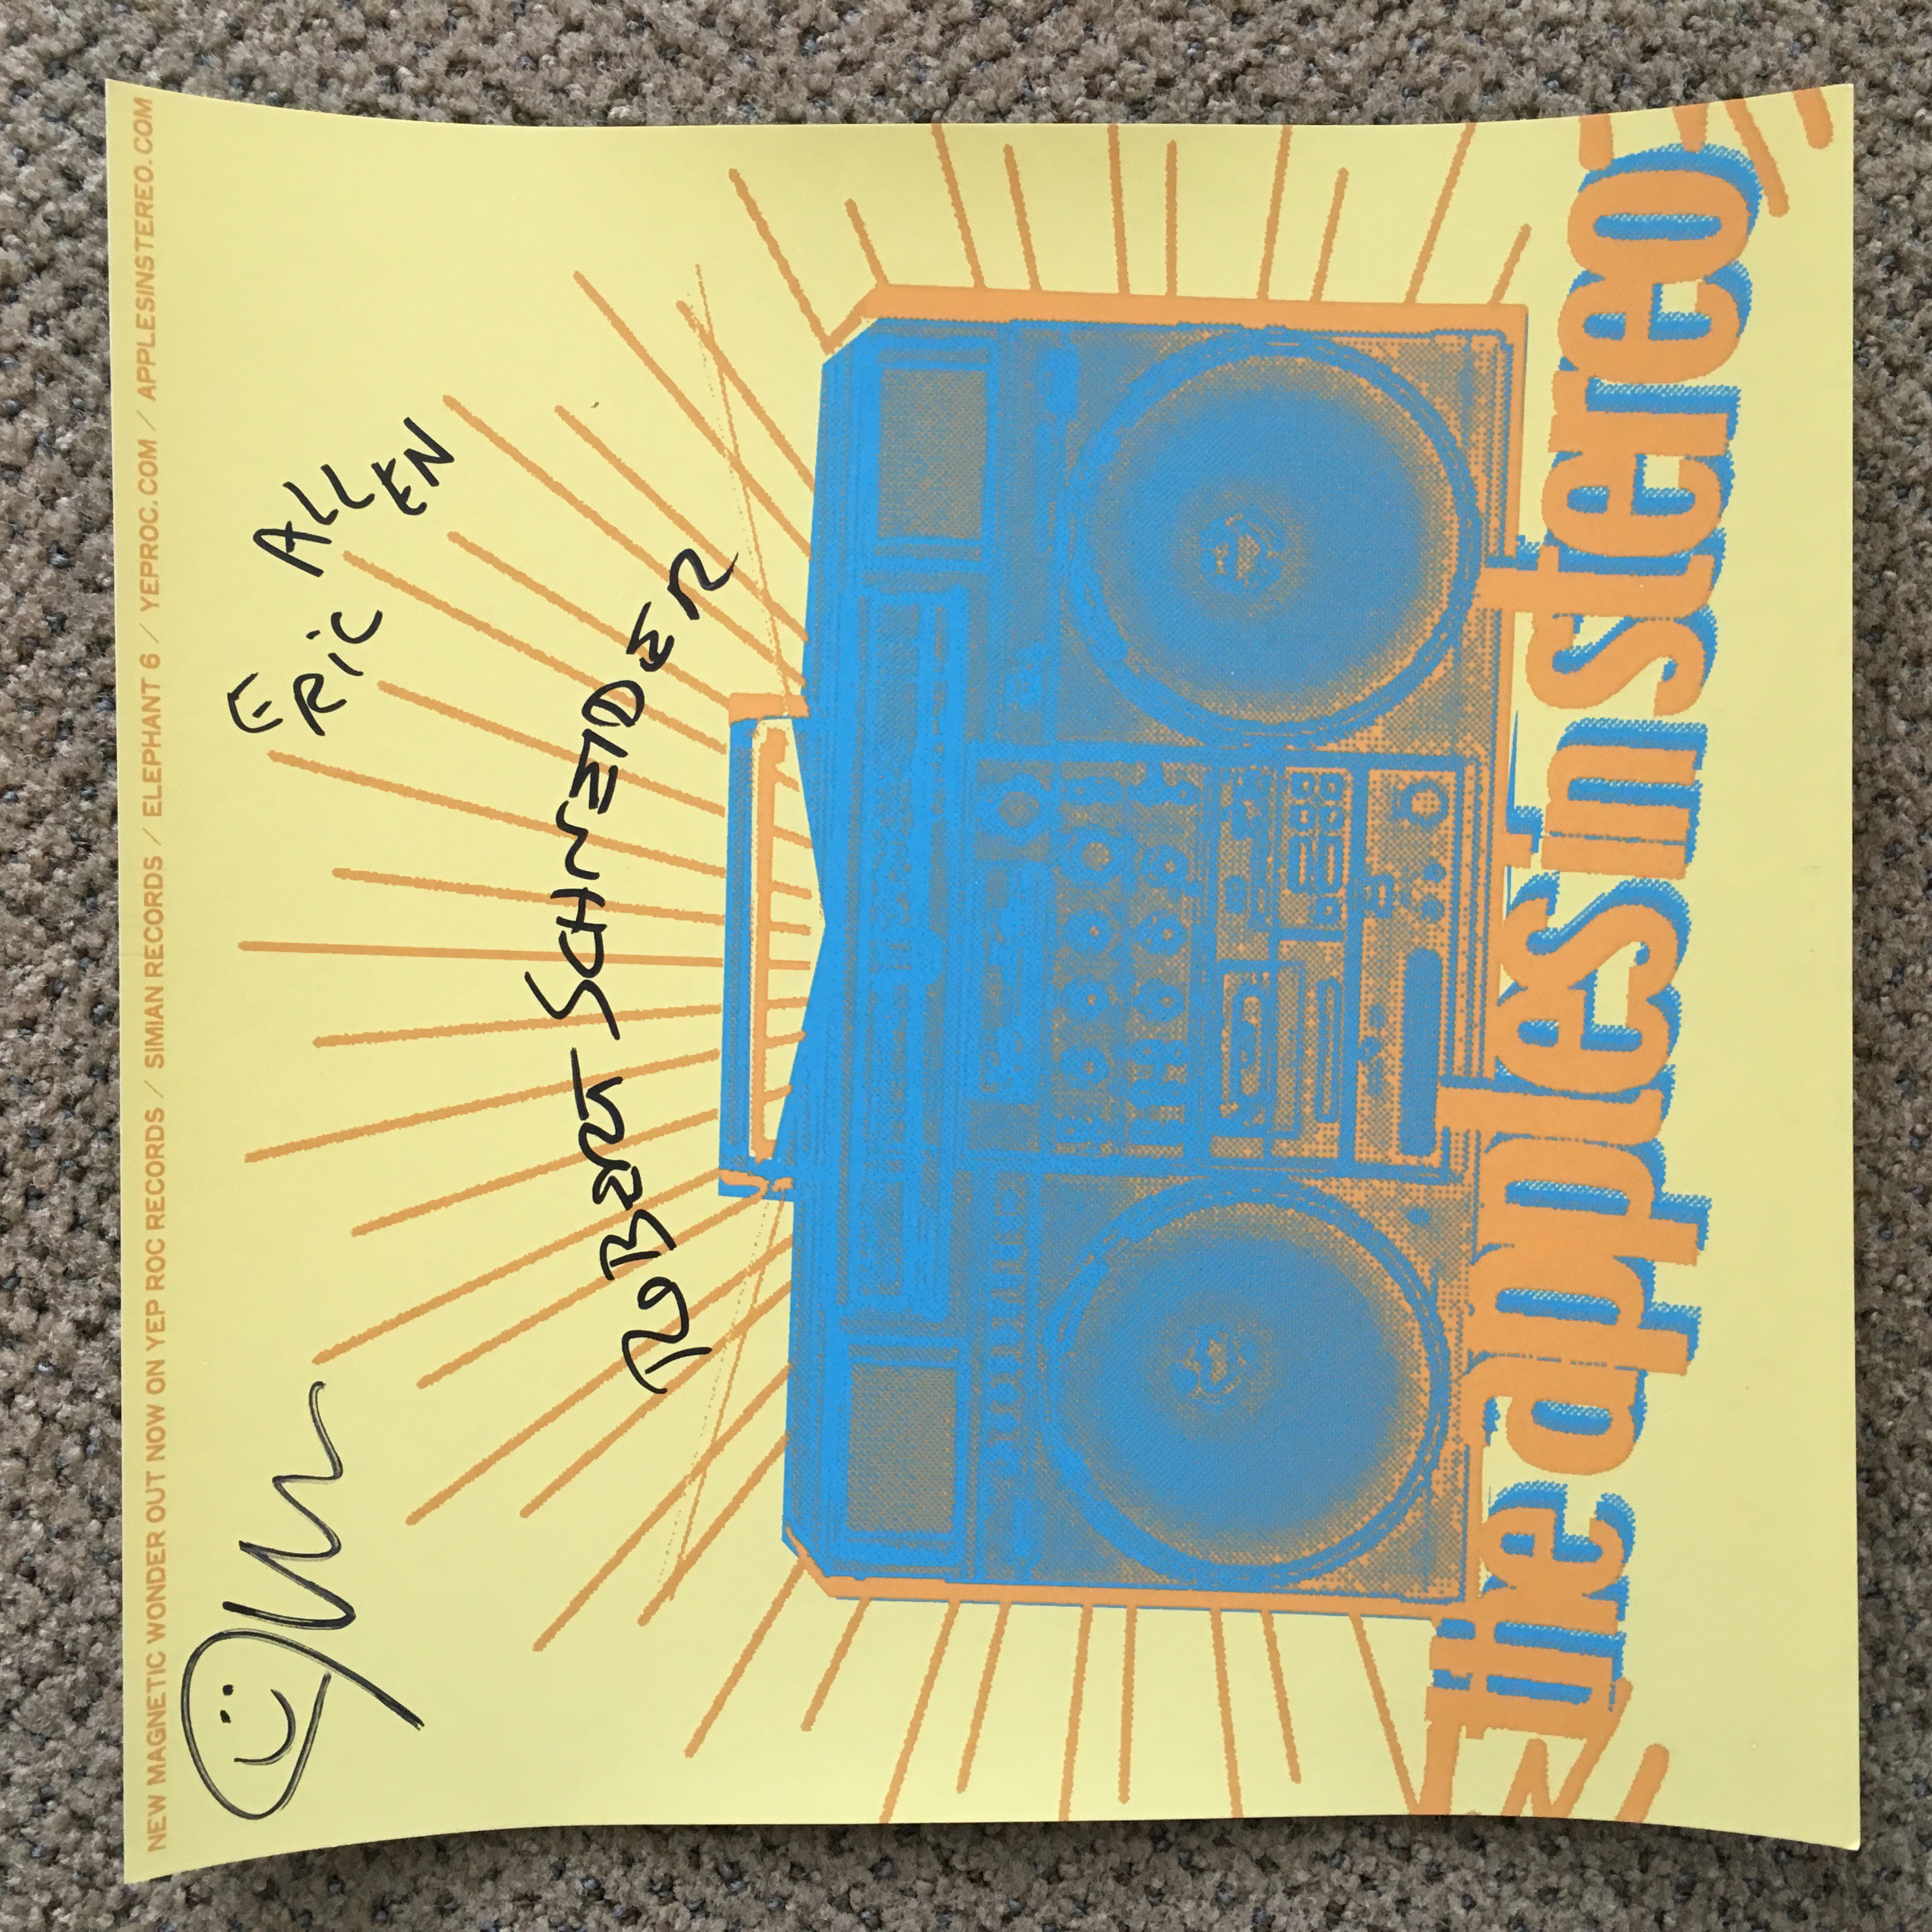 The Apples in Stereo Limited Edition Logo AUTOGRAPHED Poster